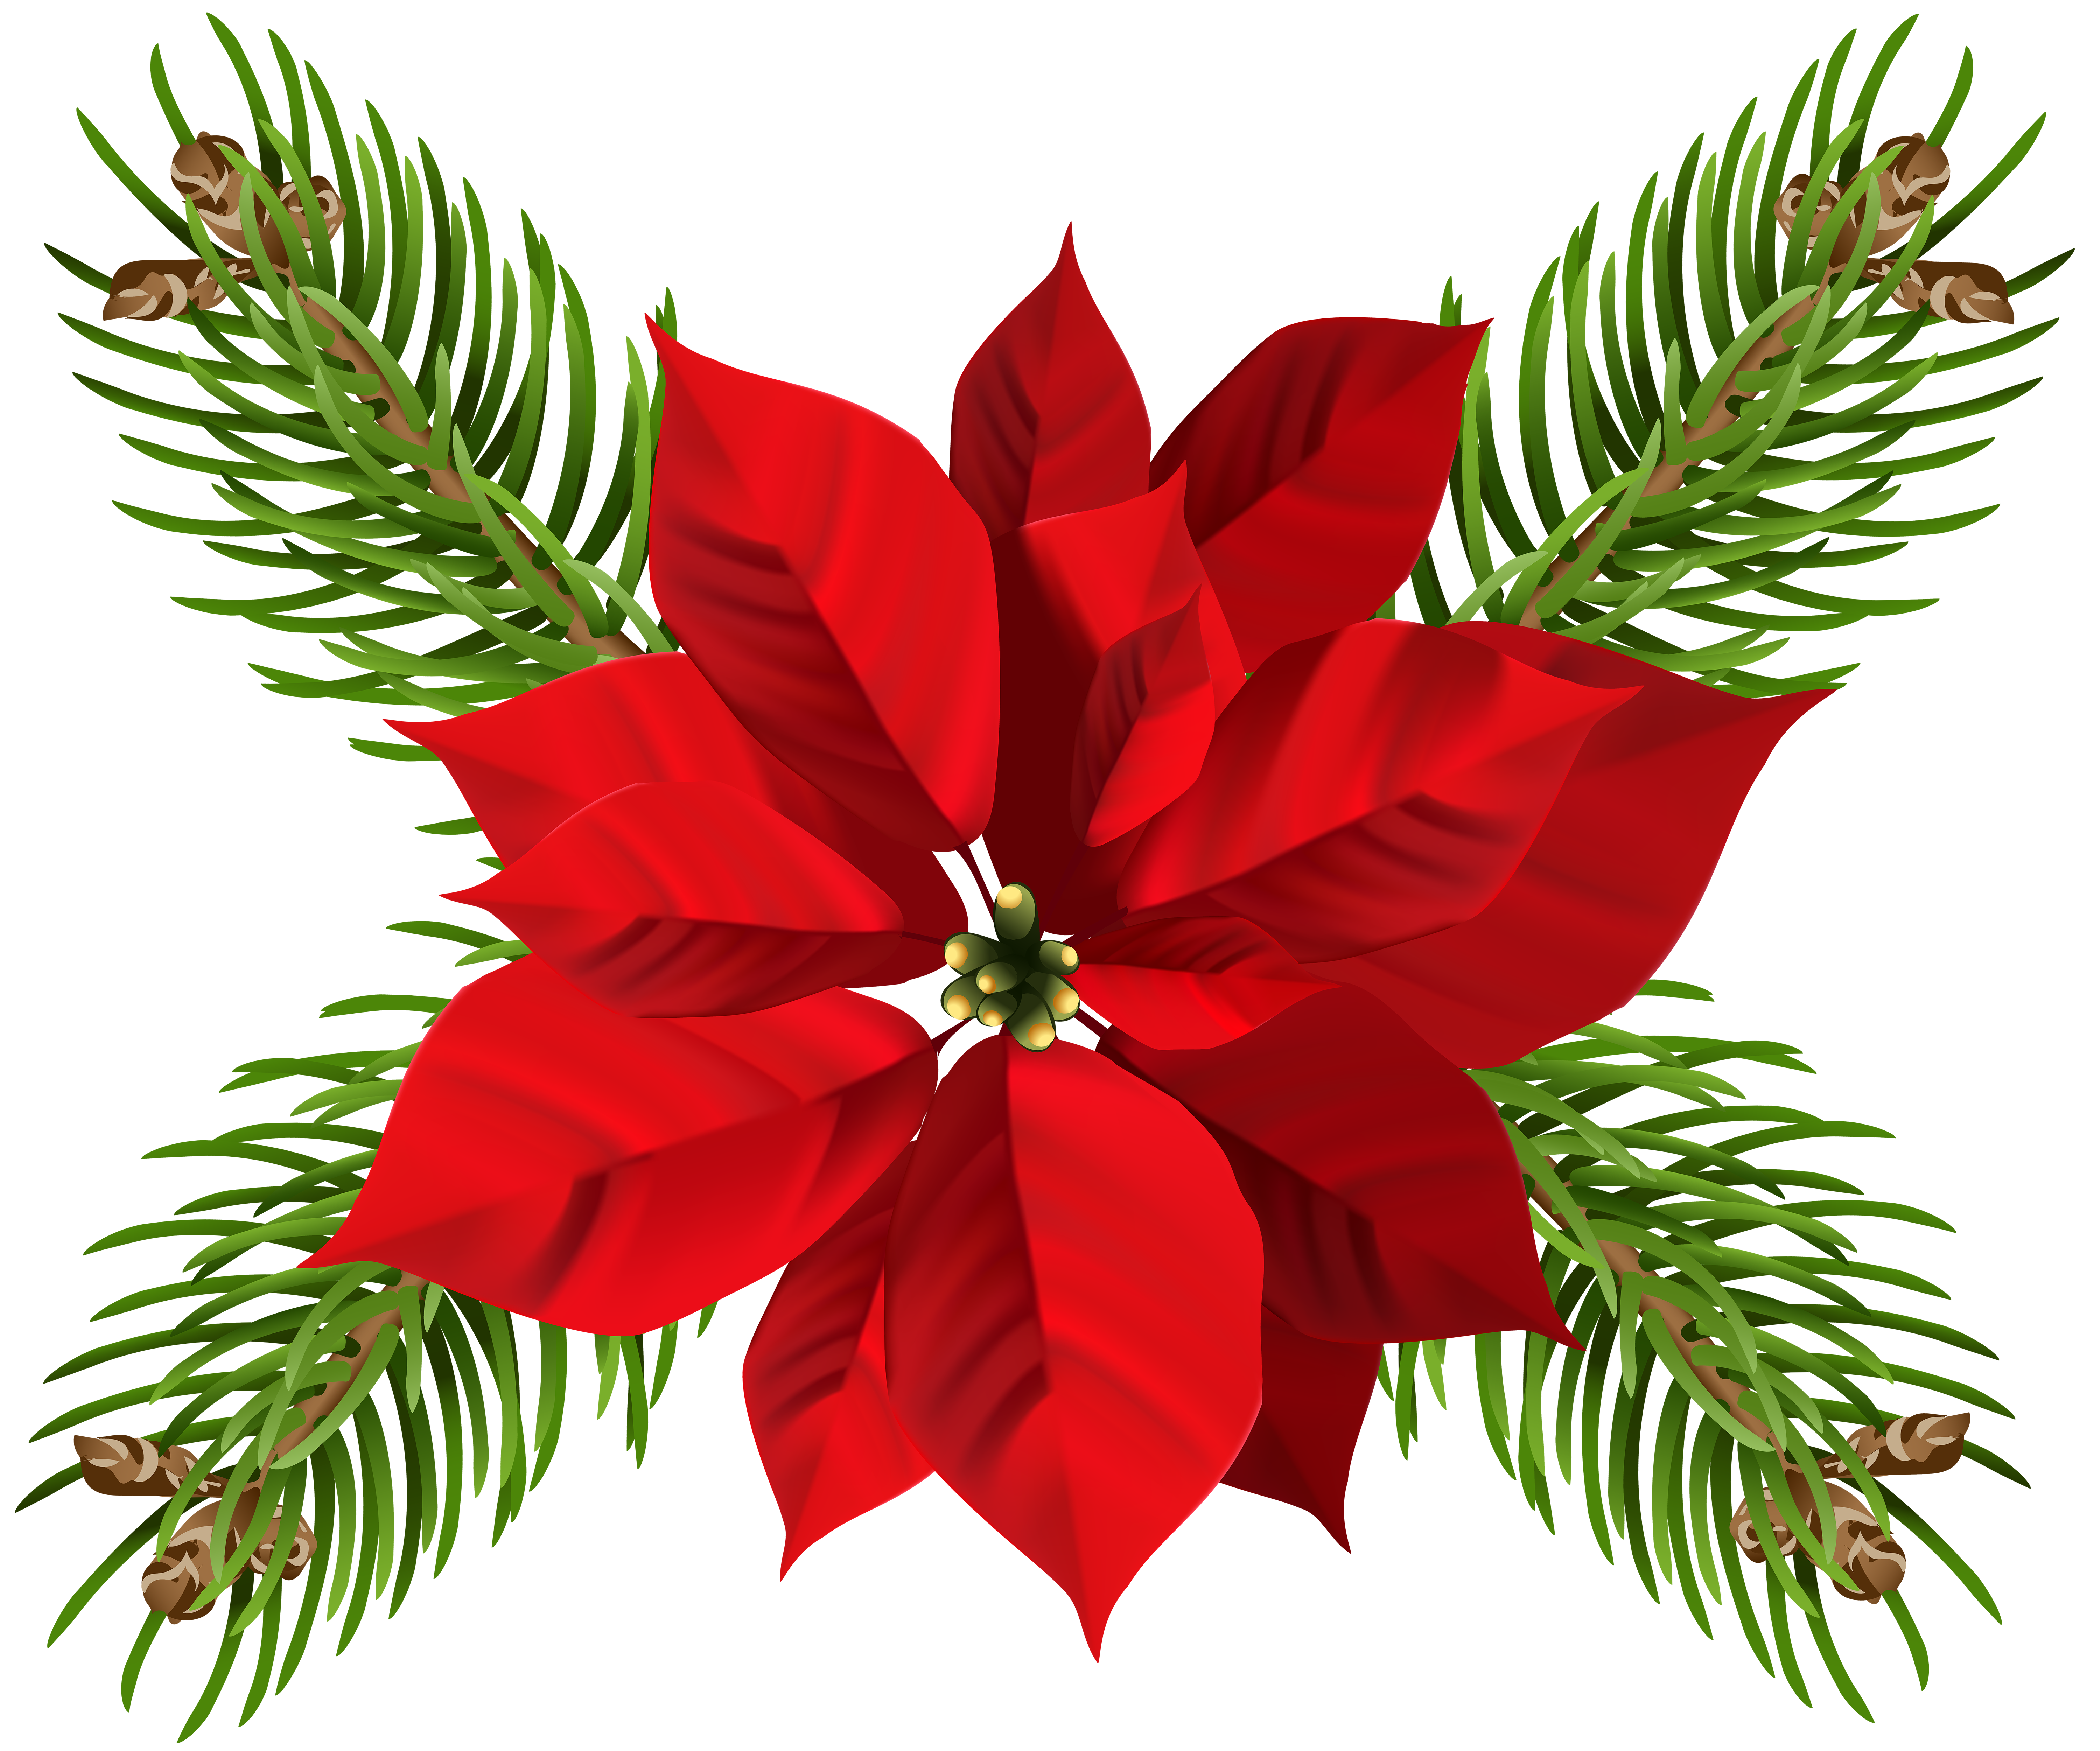 Poinsettia clipart transparent background. At getdrawings com free